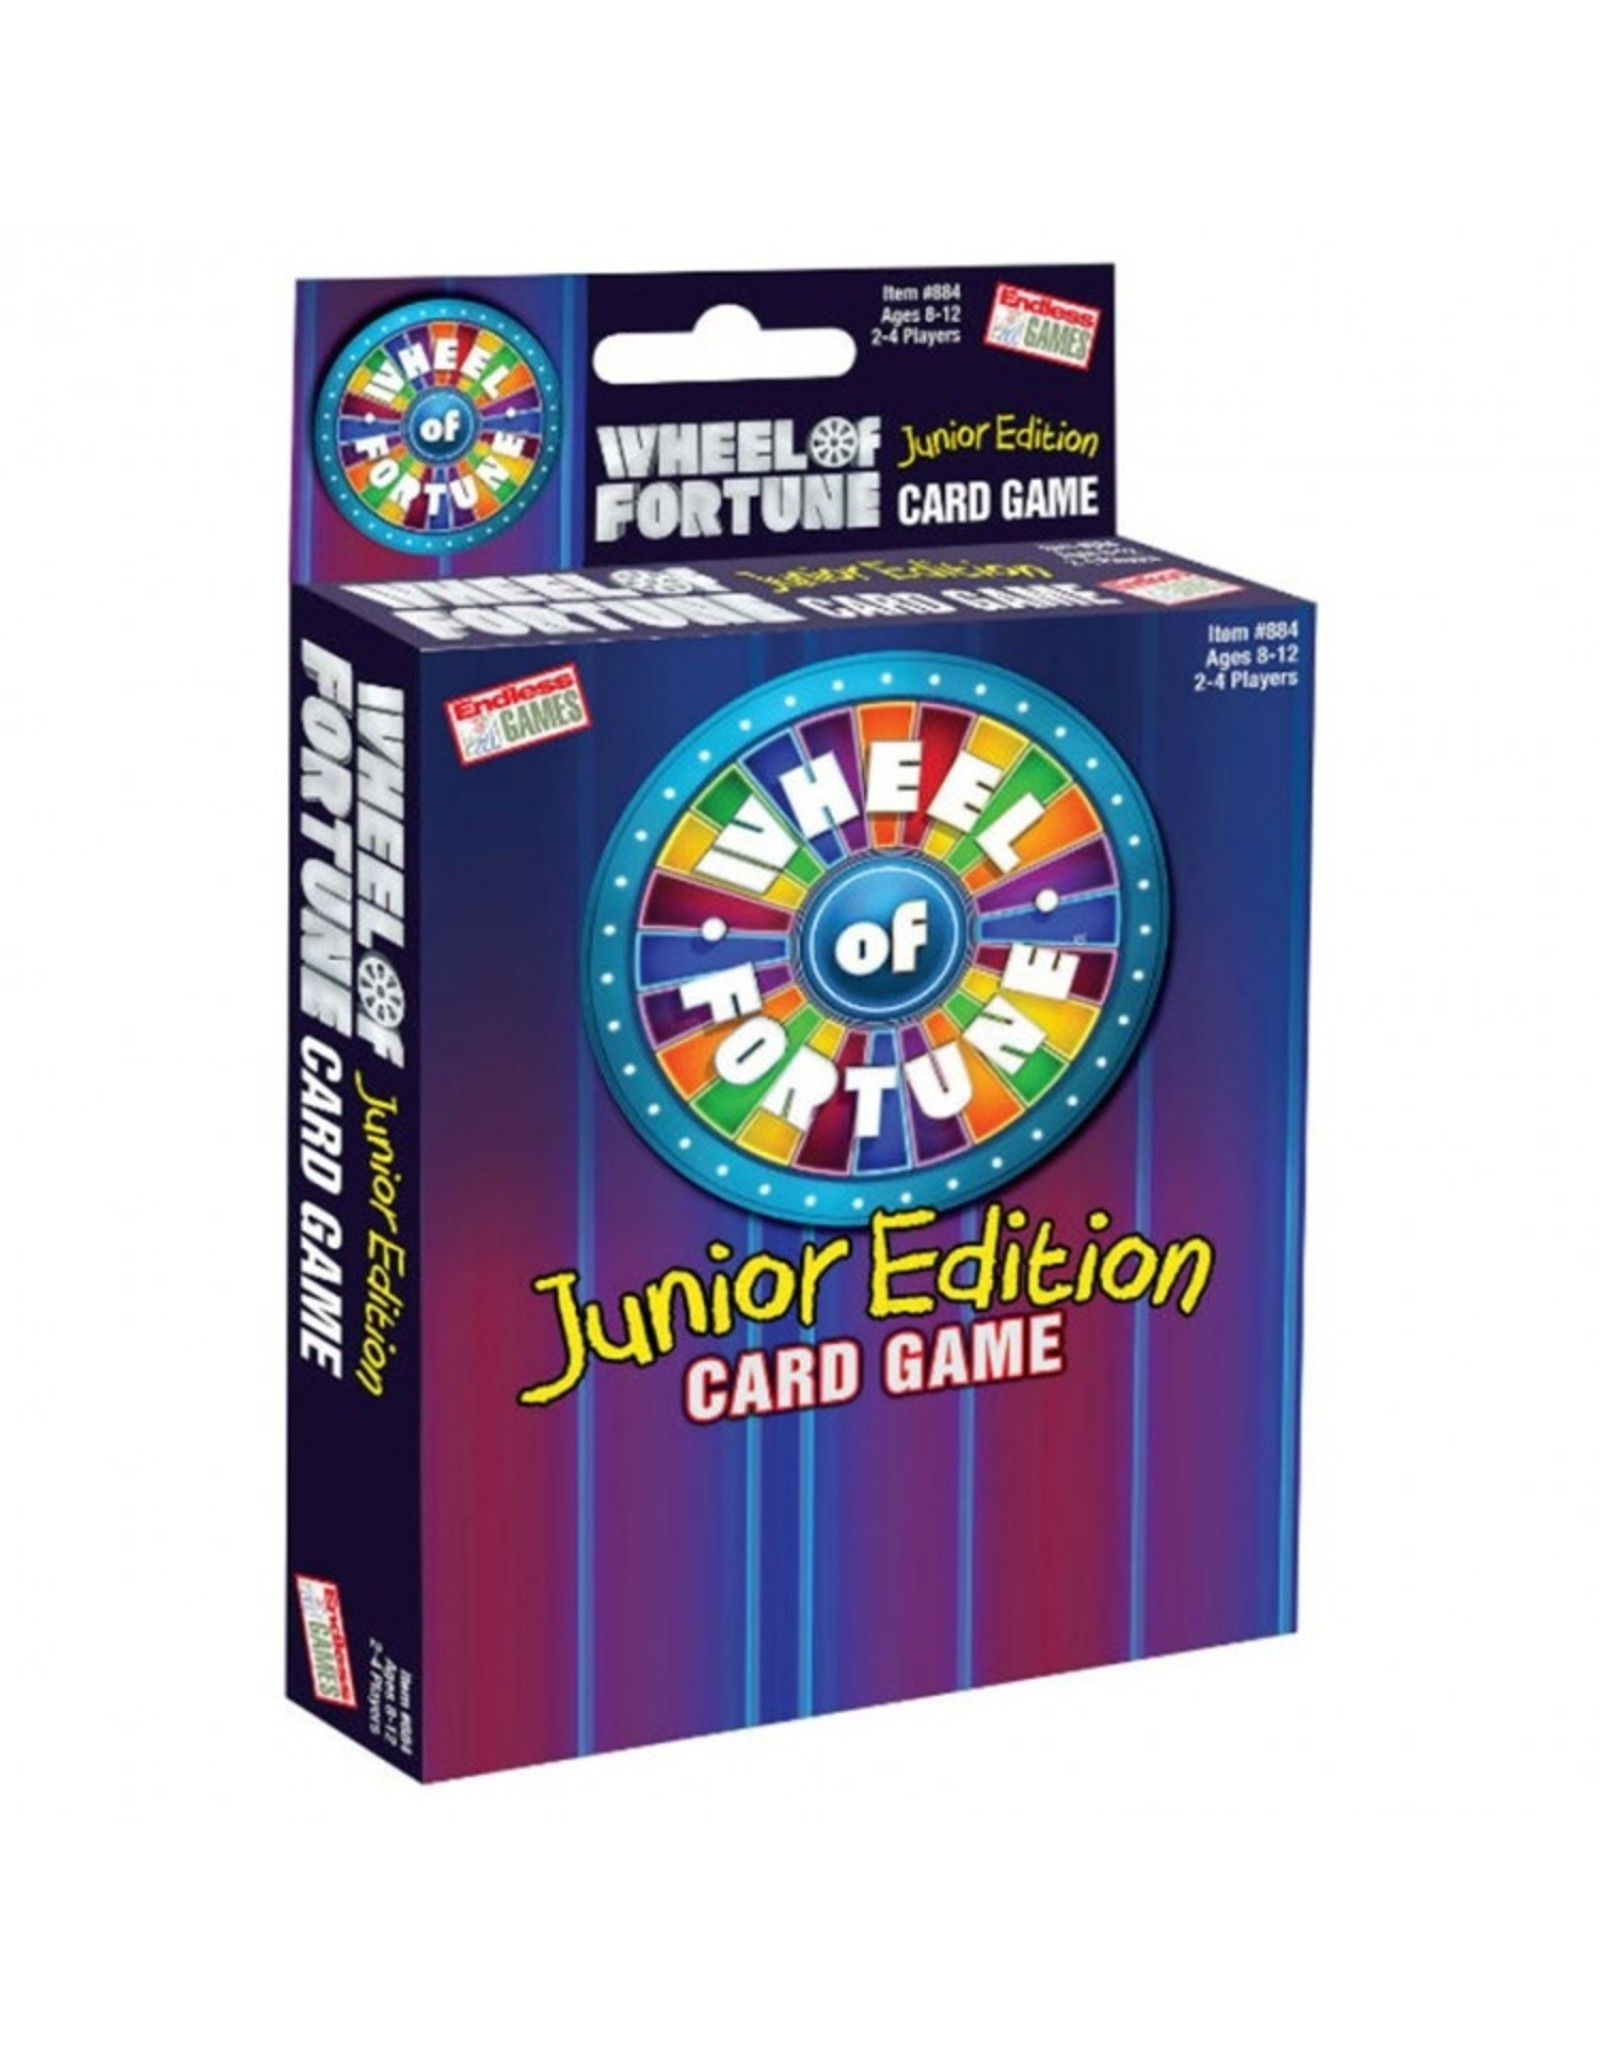 Endless Games Wheel Of Fortune Card Game Jr.